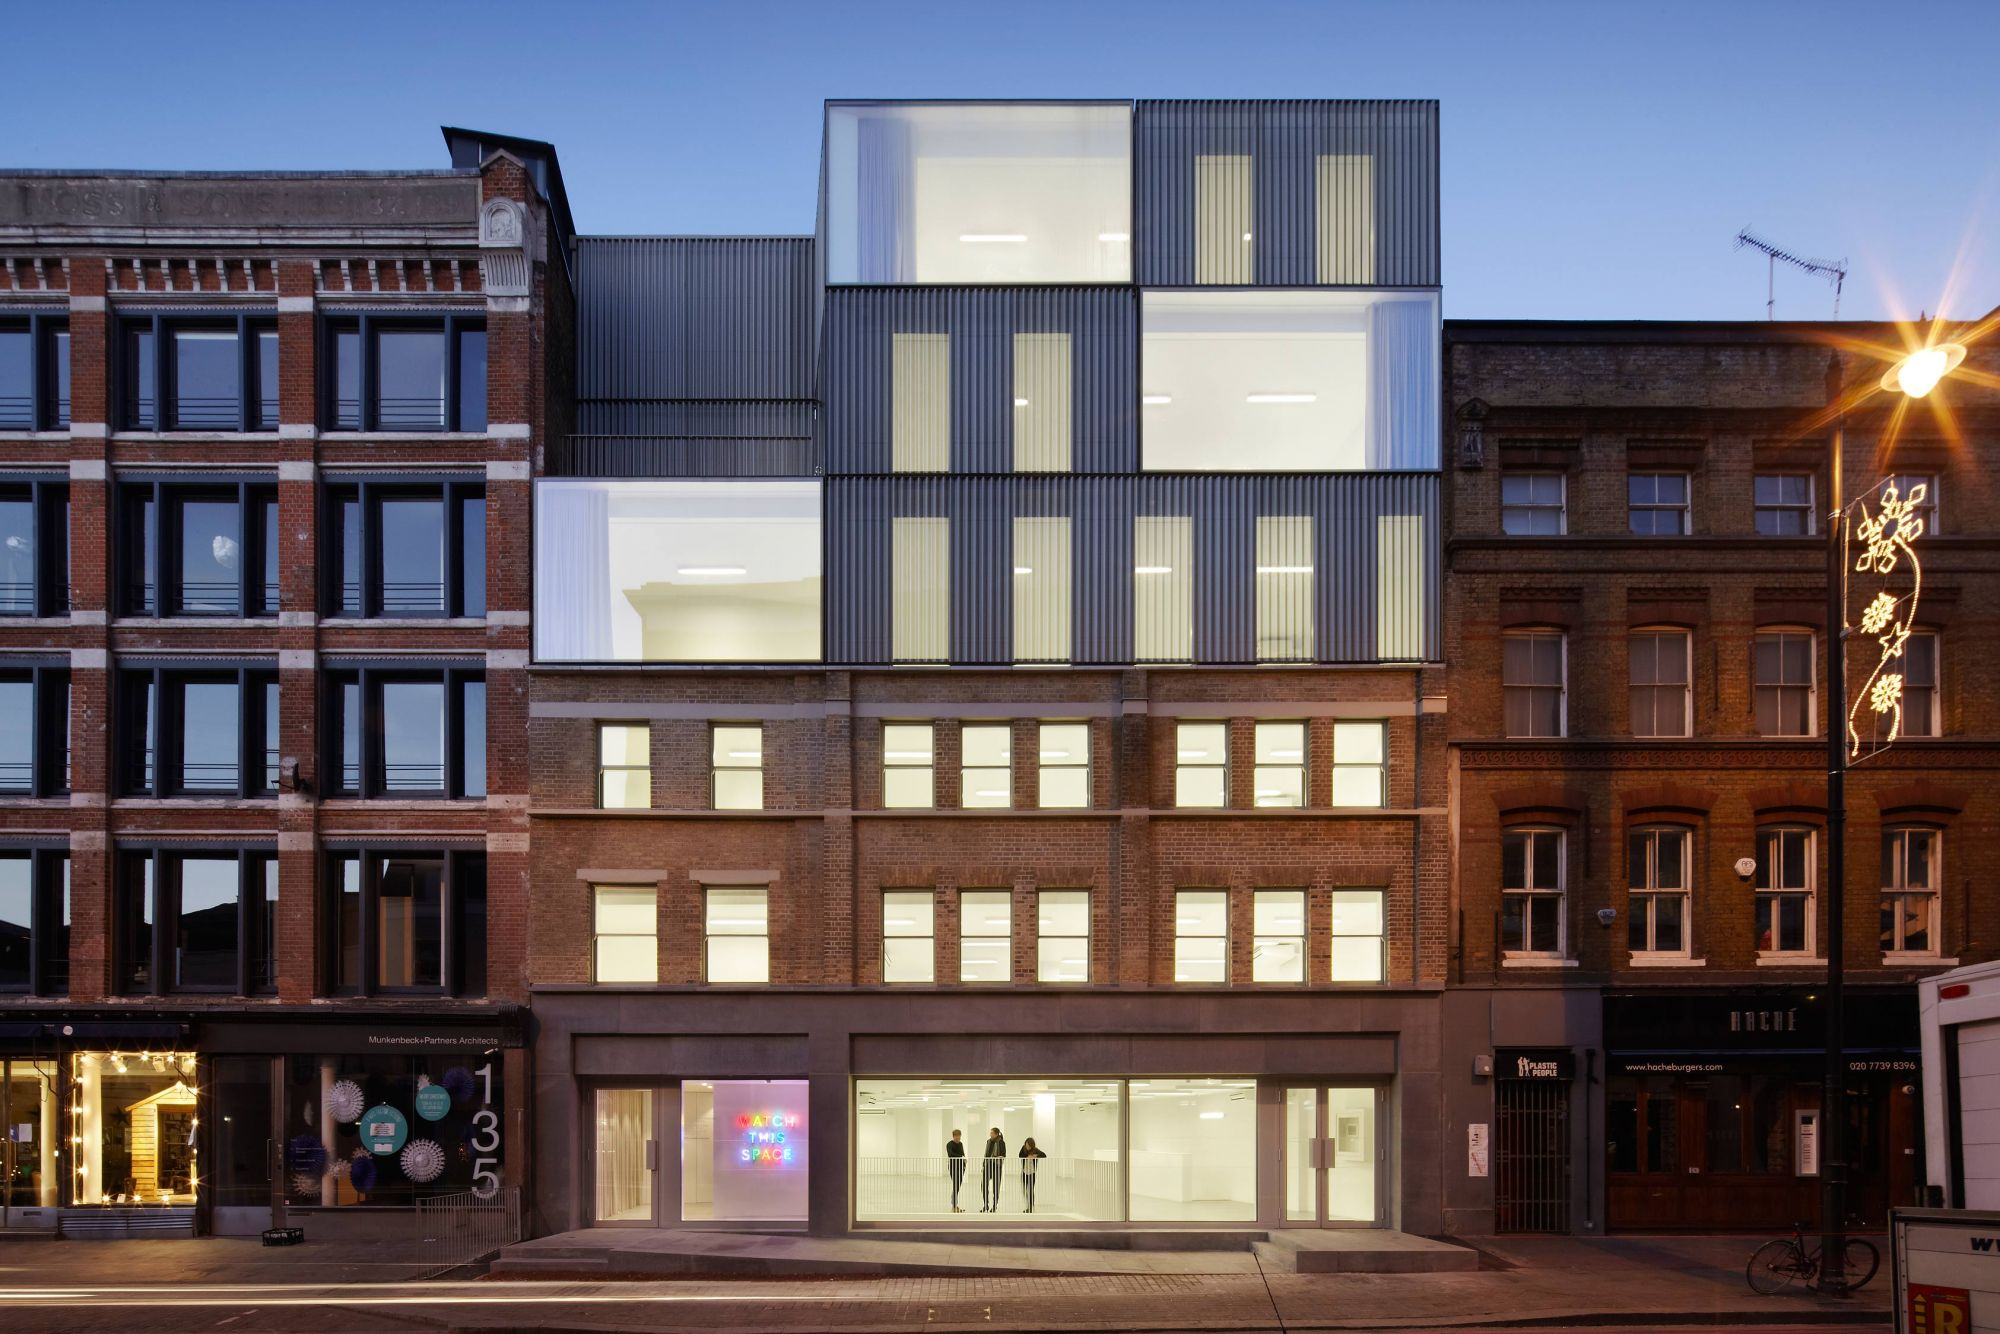 0001_Curtain-Road_Duggan-Morris-Architects_003